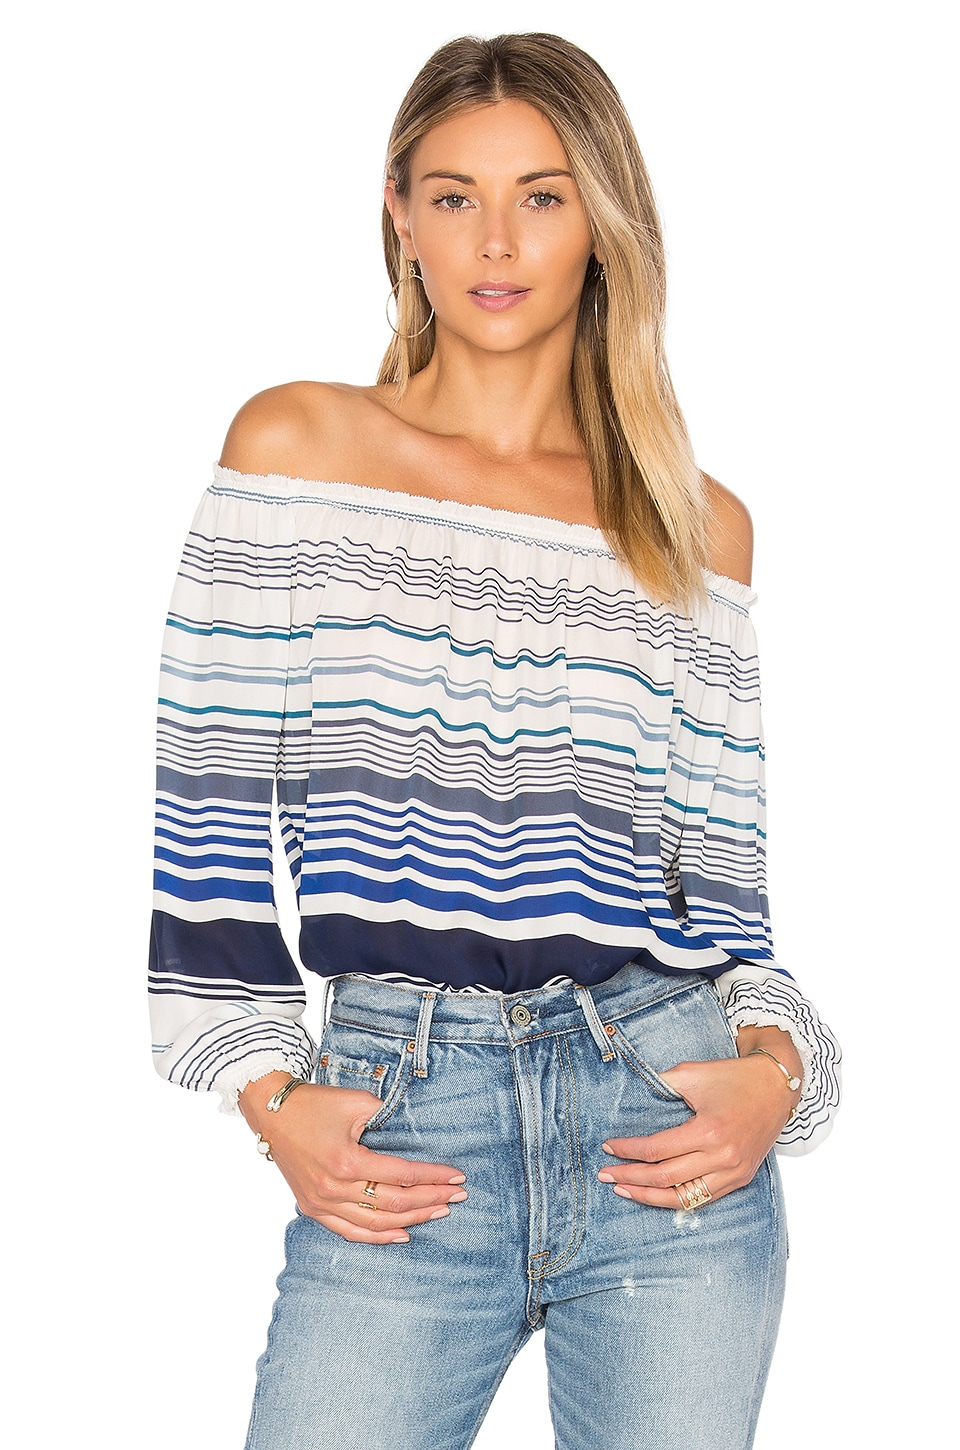 Joie Bamboo Top in Harbor Blue